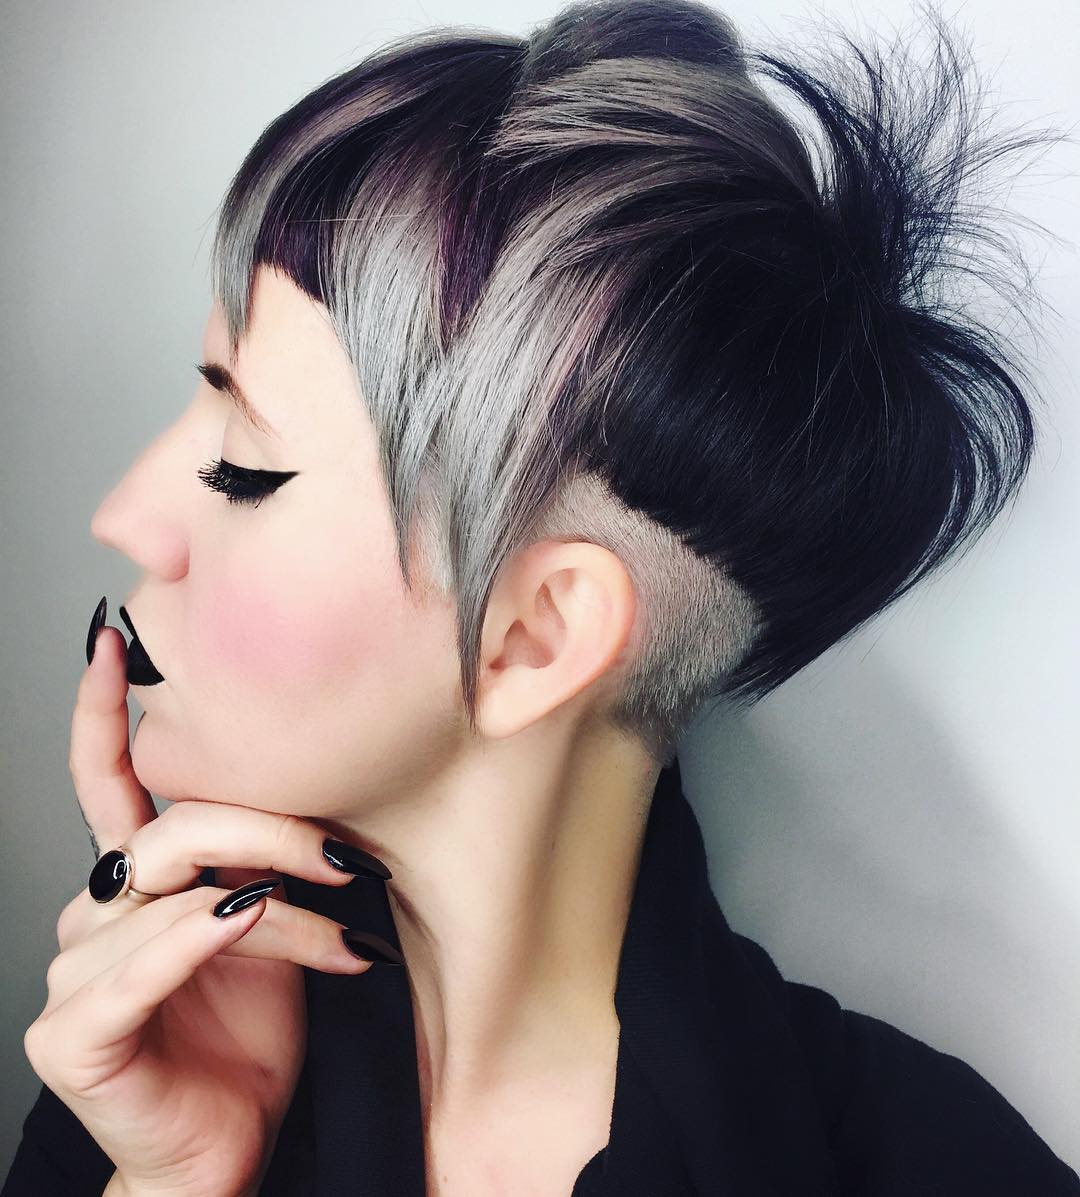 Cyberpunk Haircut